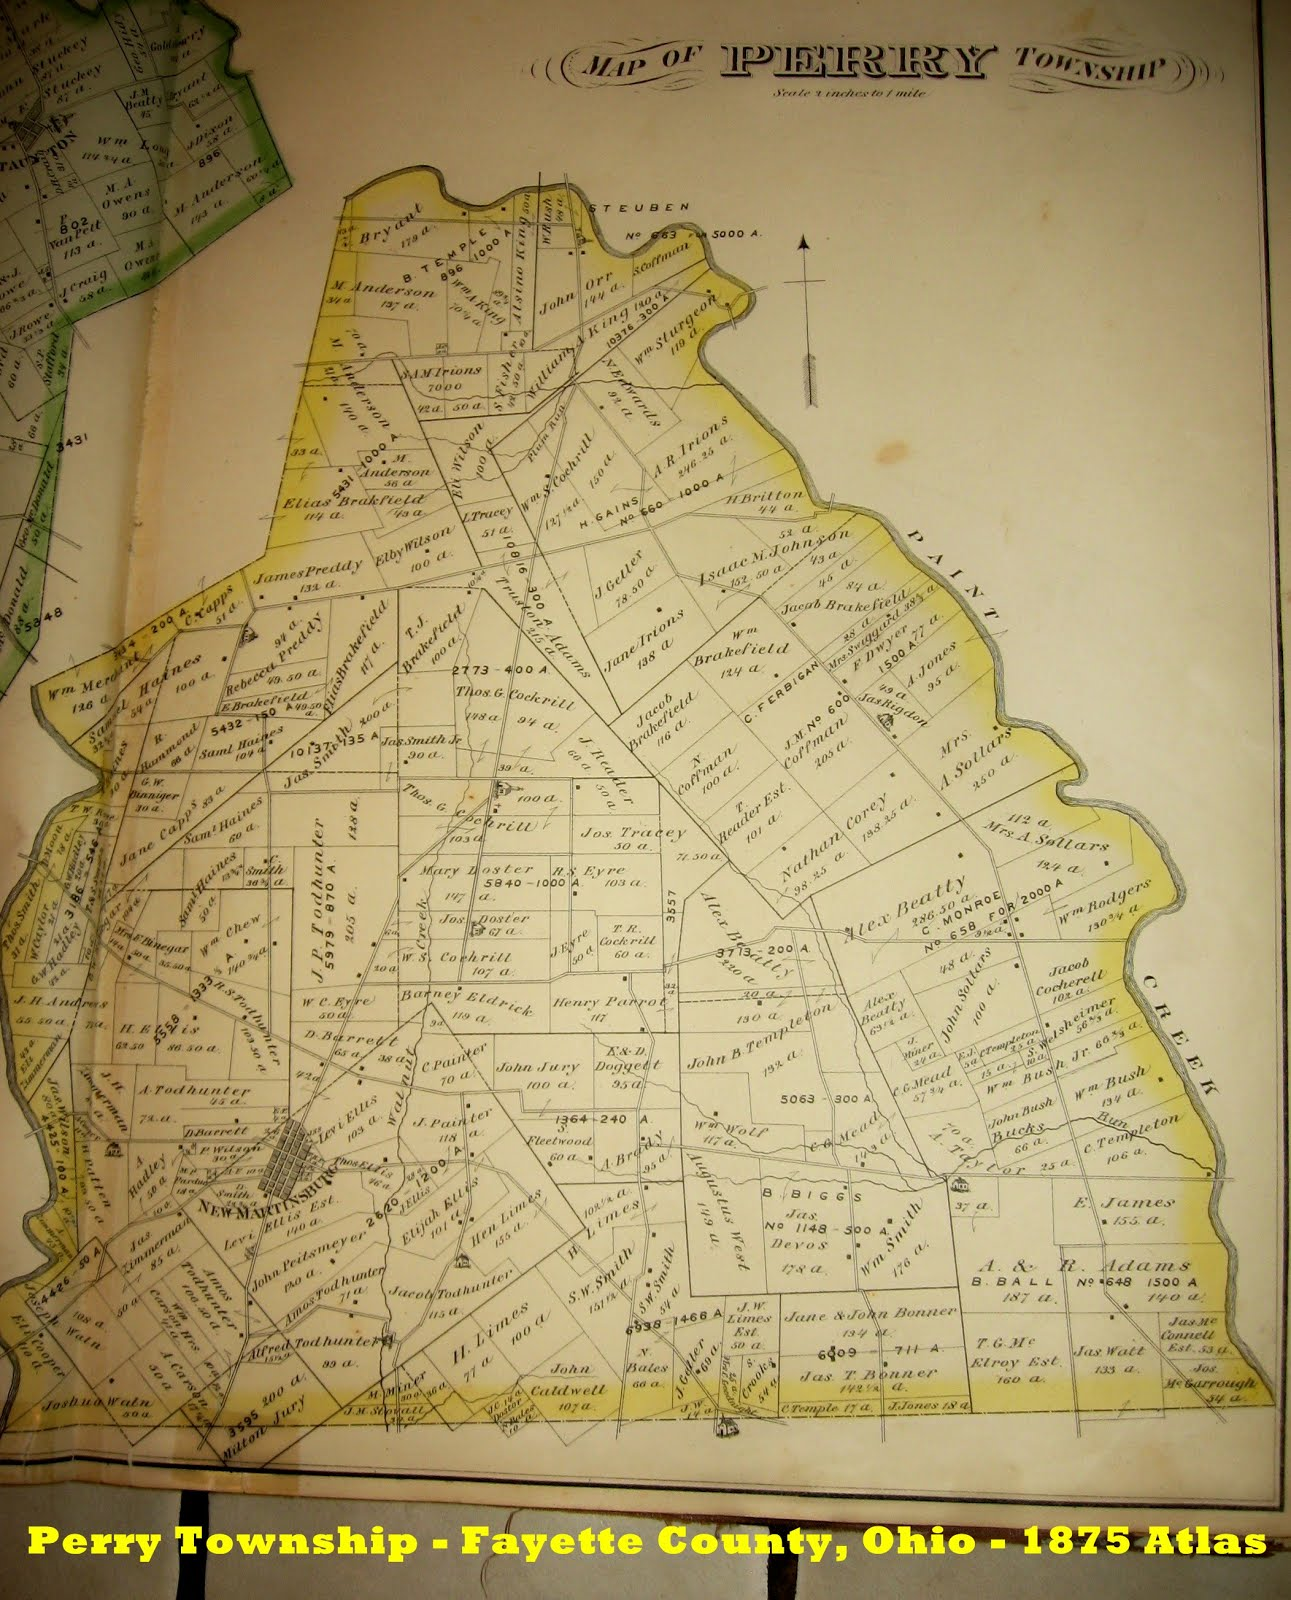 1875 Partial Lower Portion - Perry Township, Fayette County, Ohio Map